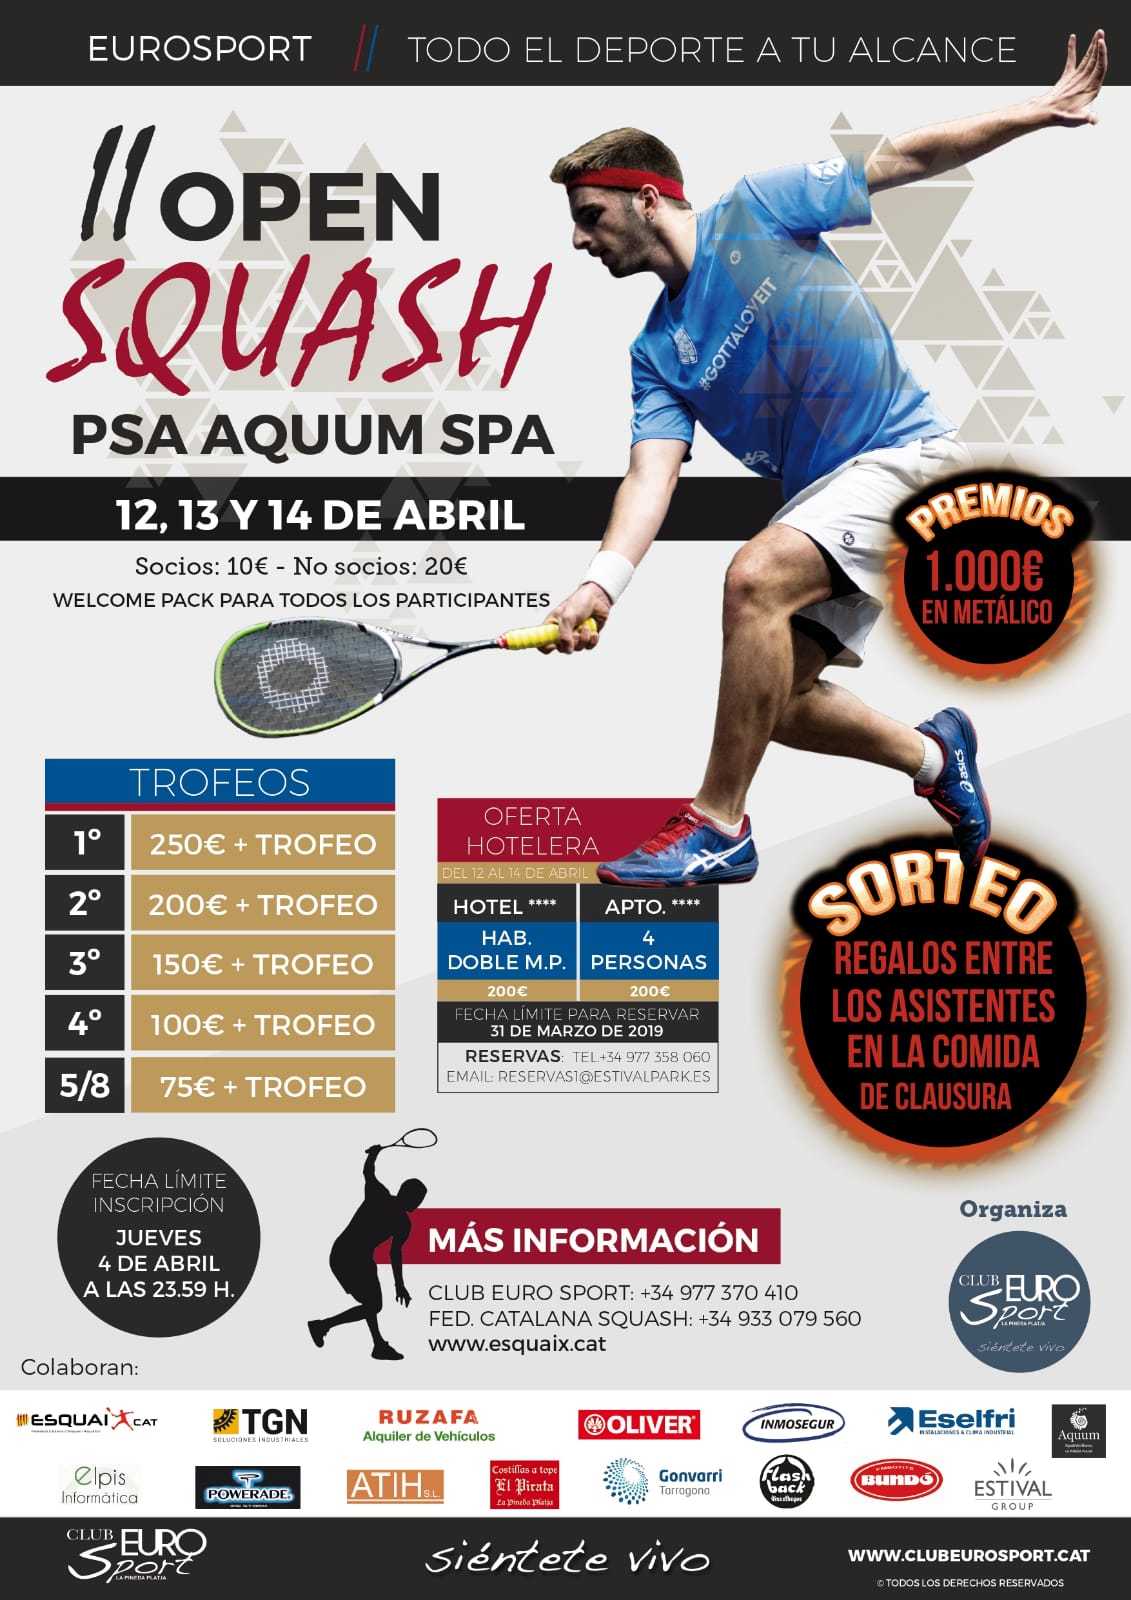 II Open Squash PSA AQUUM SPA abril 2019